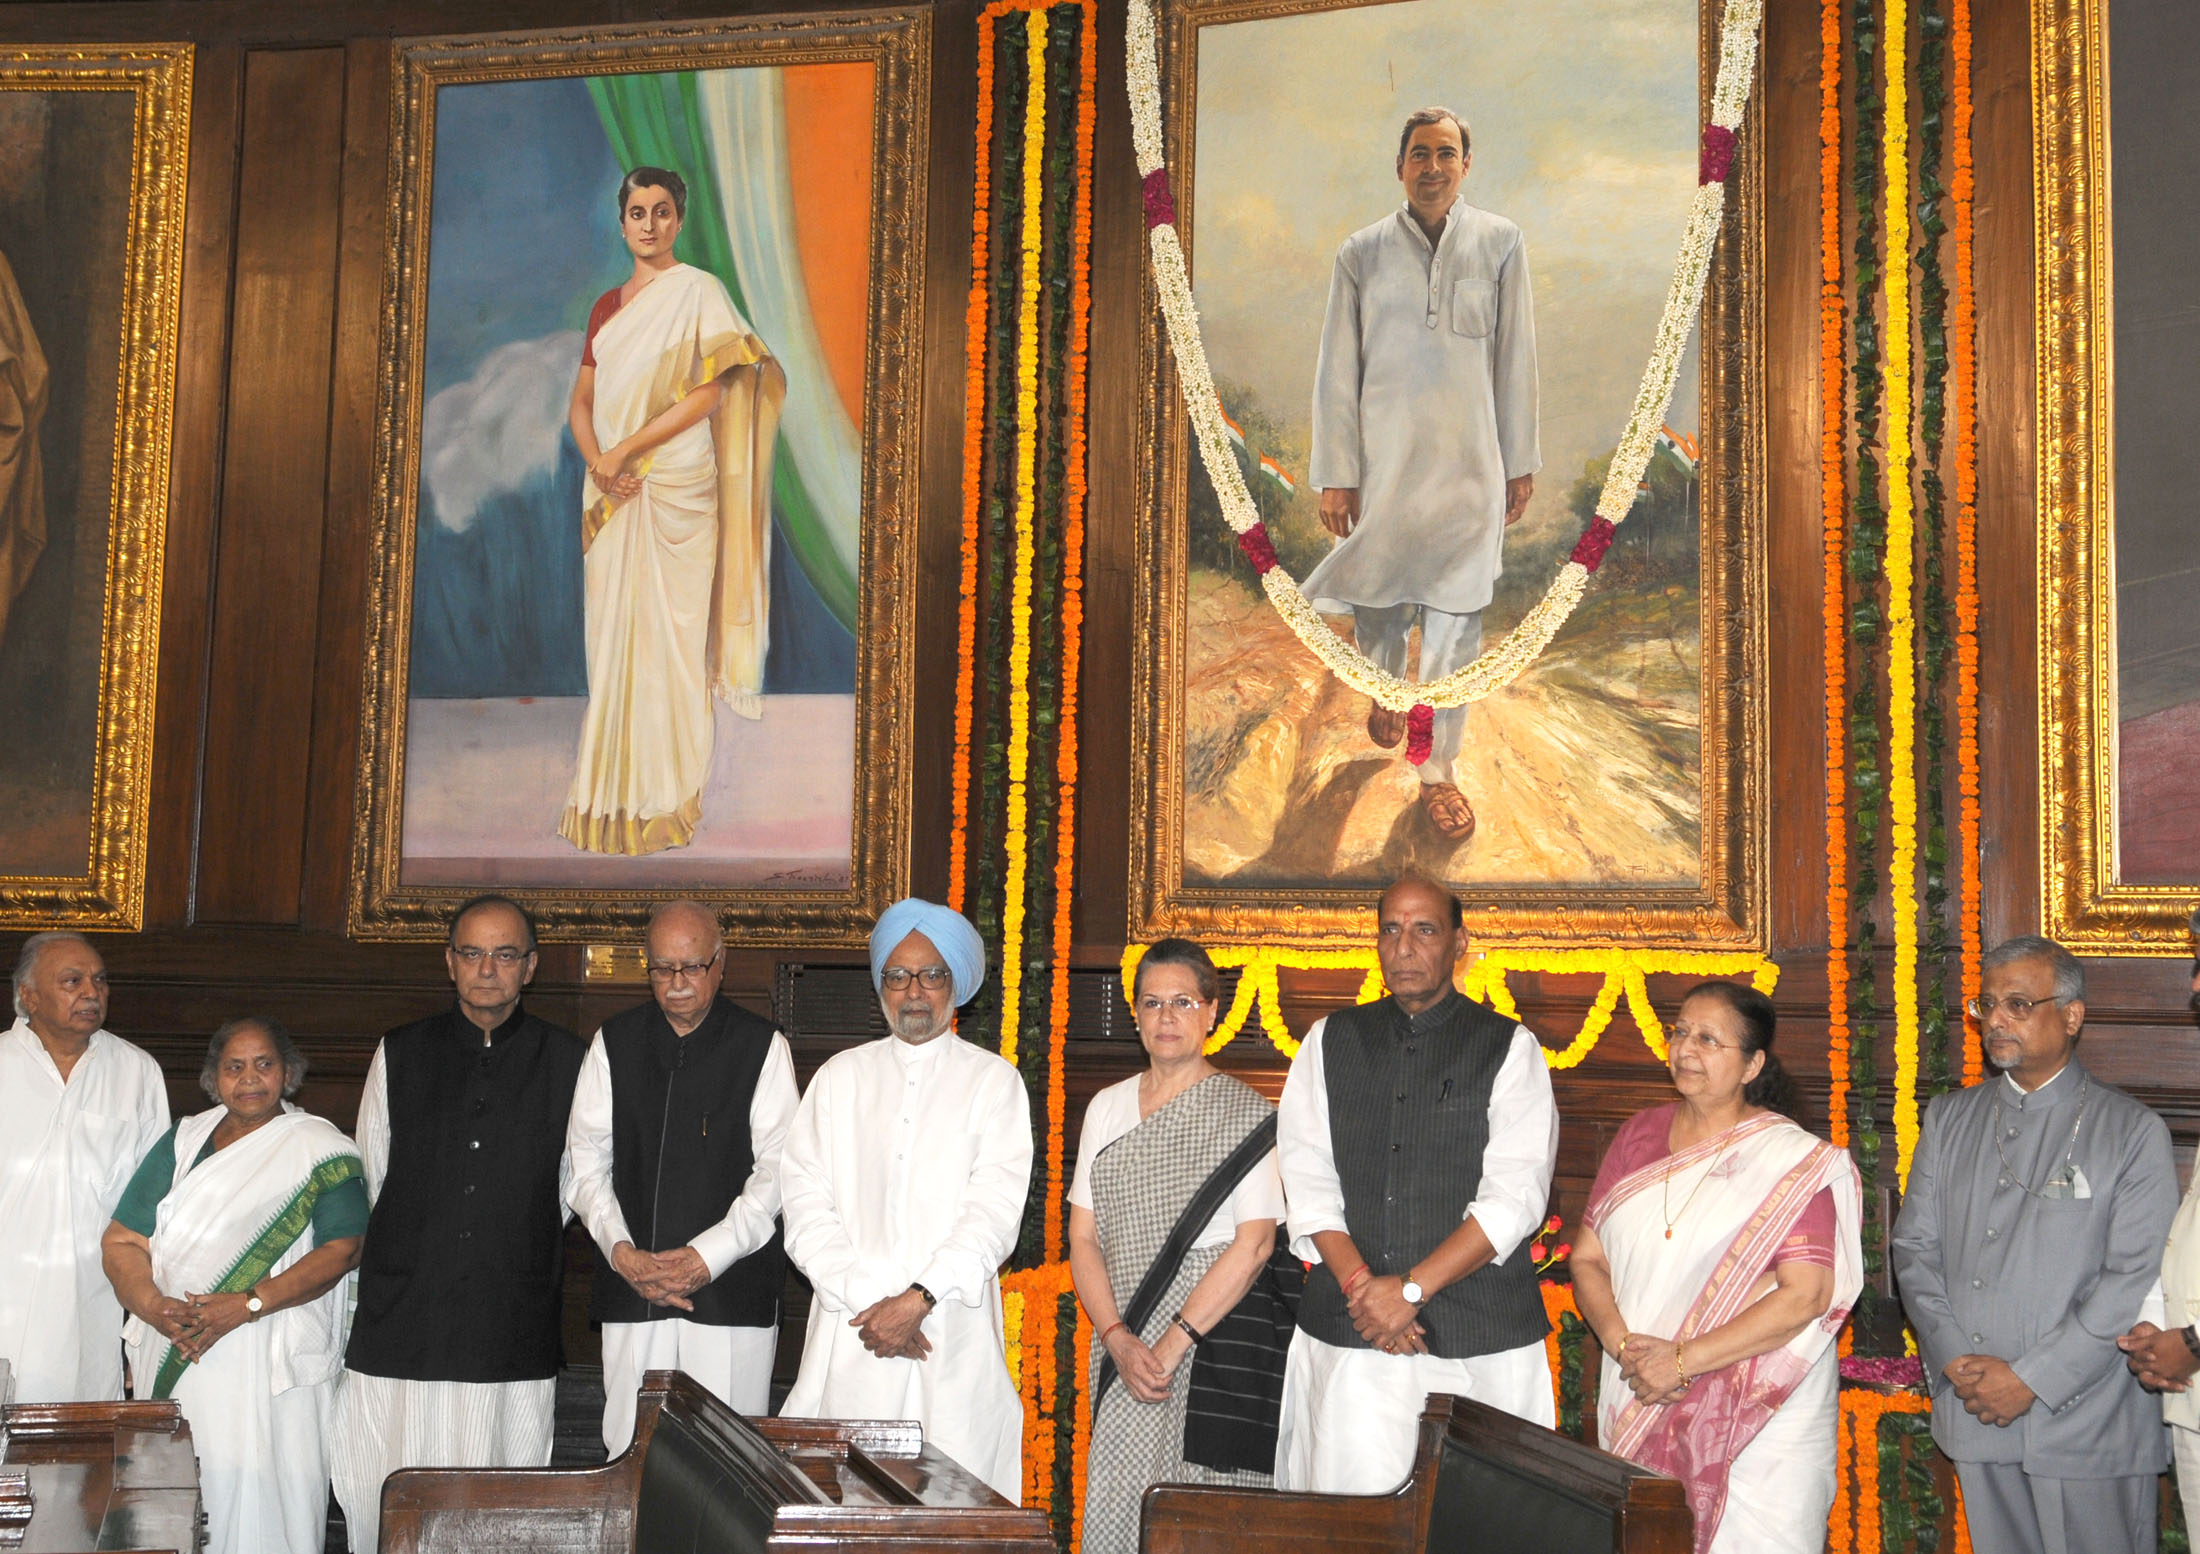 The Speaker, Lok Sabha, Smt. Sumitra Mahajan, the Union Home Minister, Shri Rajnath Singh, the Union Minister for Finance, Corporate Affairs and Information & Broadcasting, Shri Arun Jaitley and other dignitaries paid homage to the former Prime Minister, late Shri Rajiv Gandhi, on his 71st birth anniversary, at Parliament House, in New Delhi on August 20, 2015.